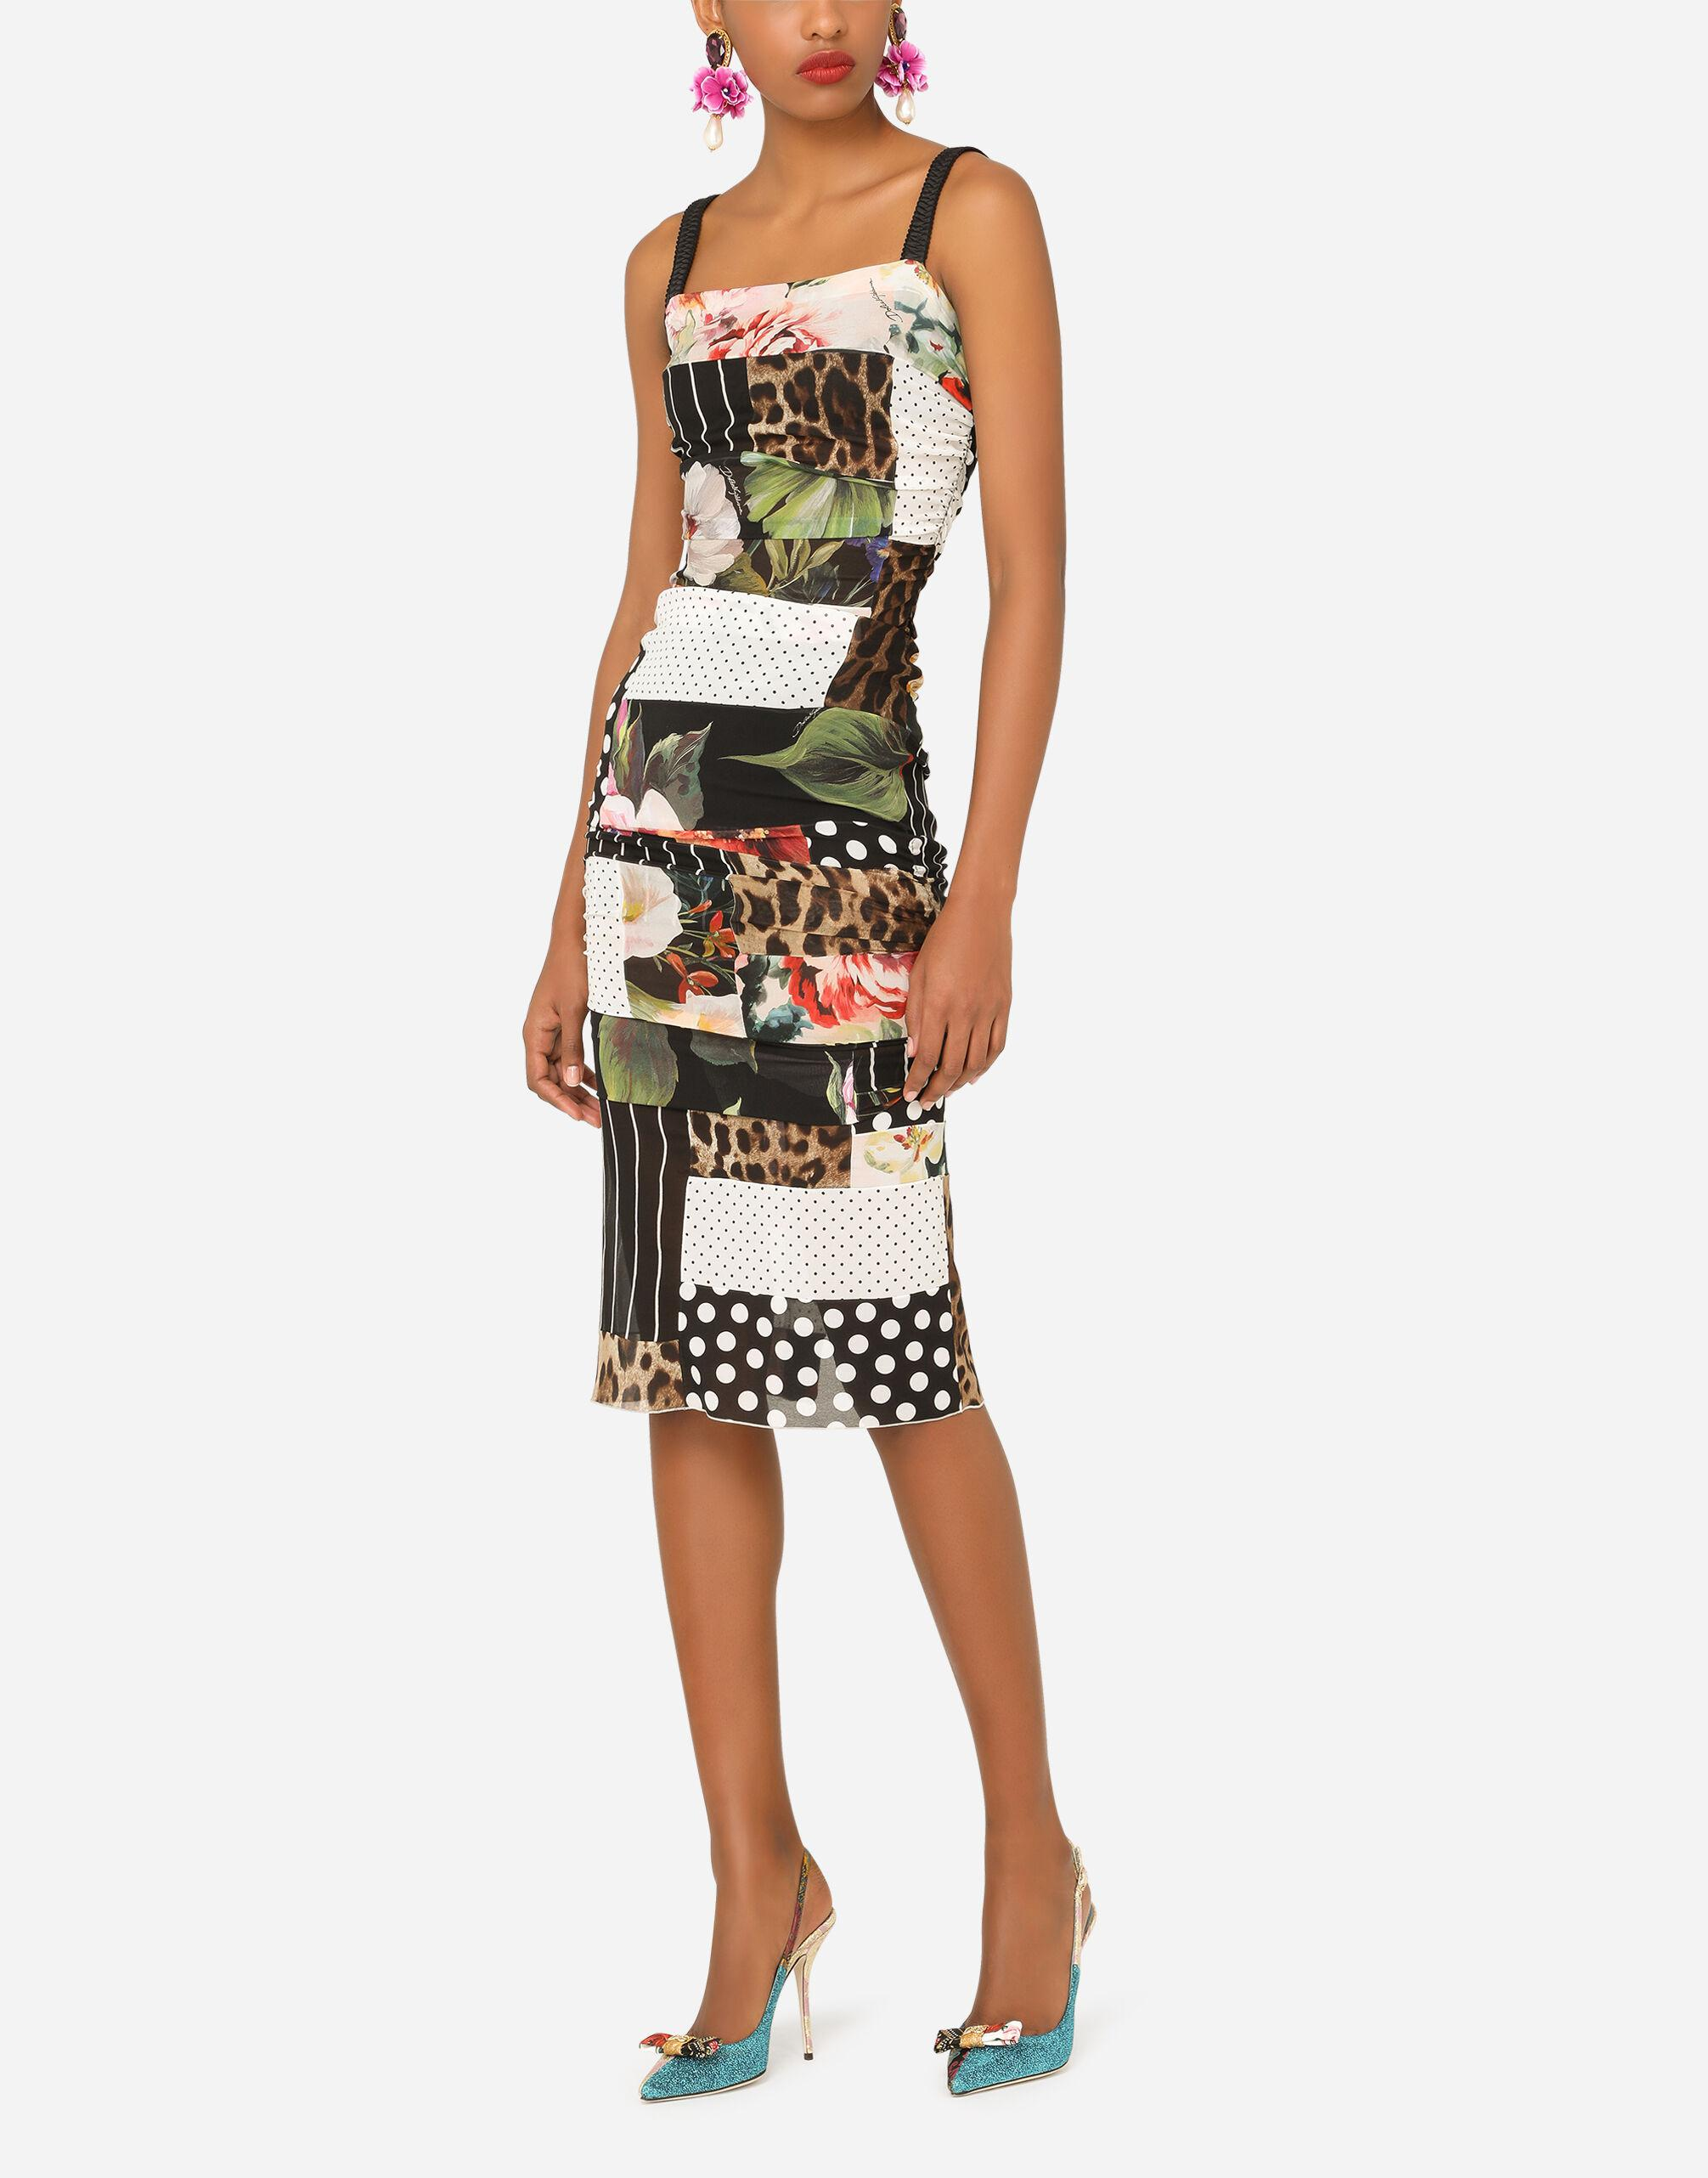 Patchwork chiffon and georgette dress with draping 3